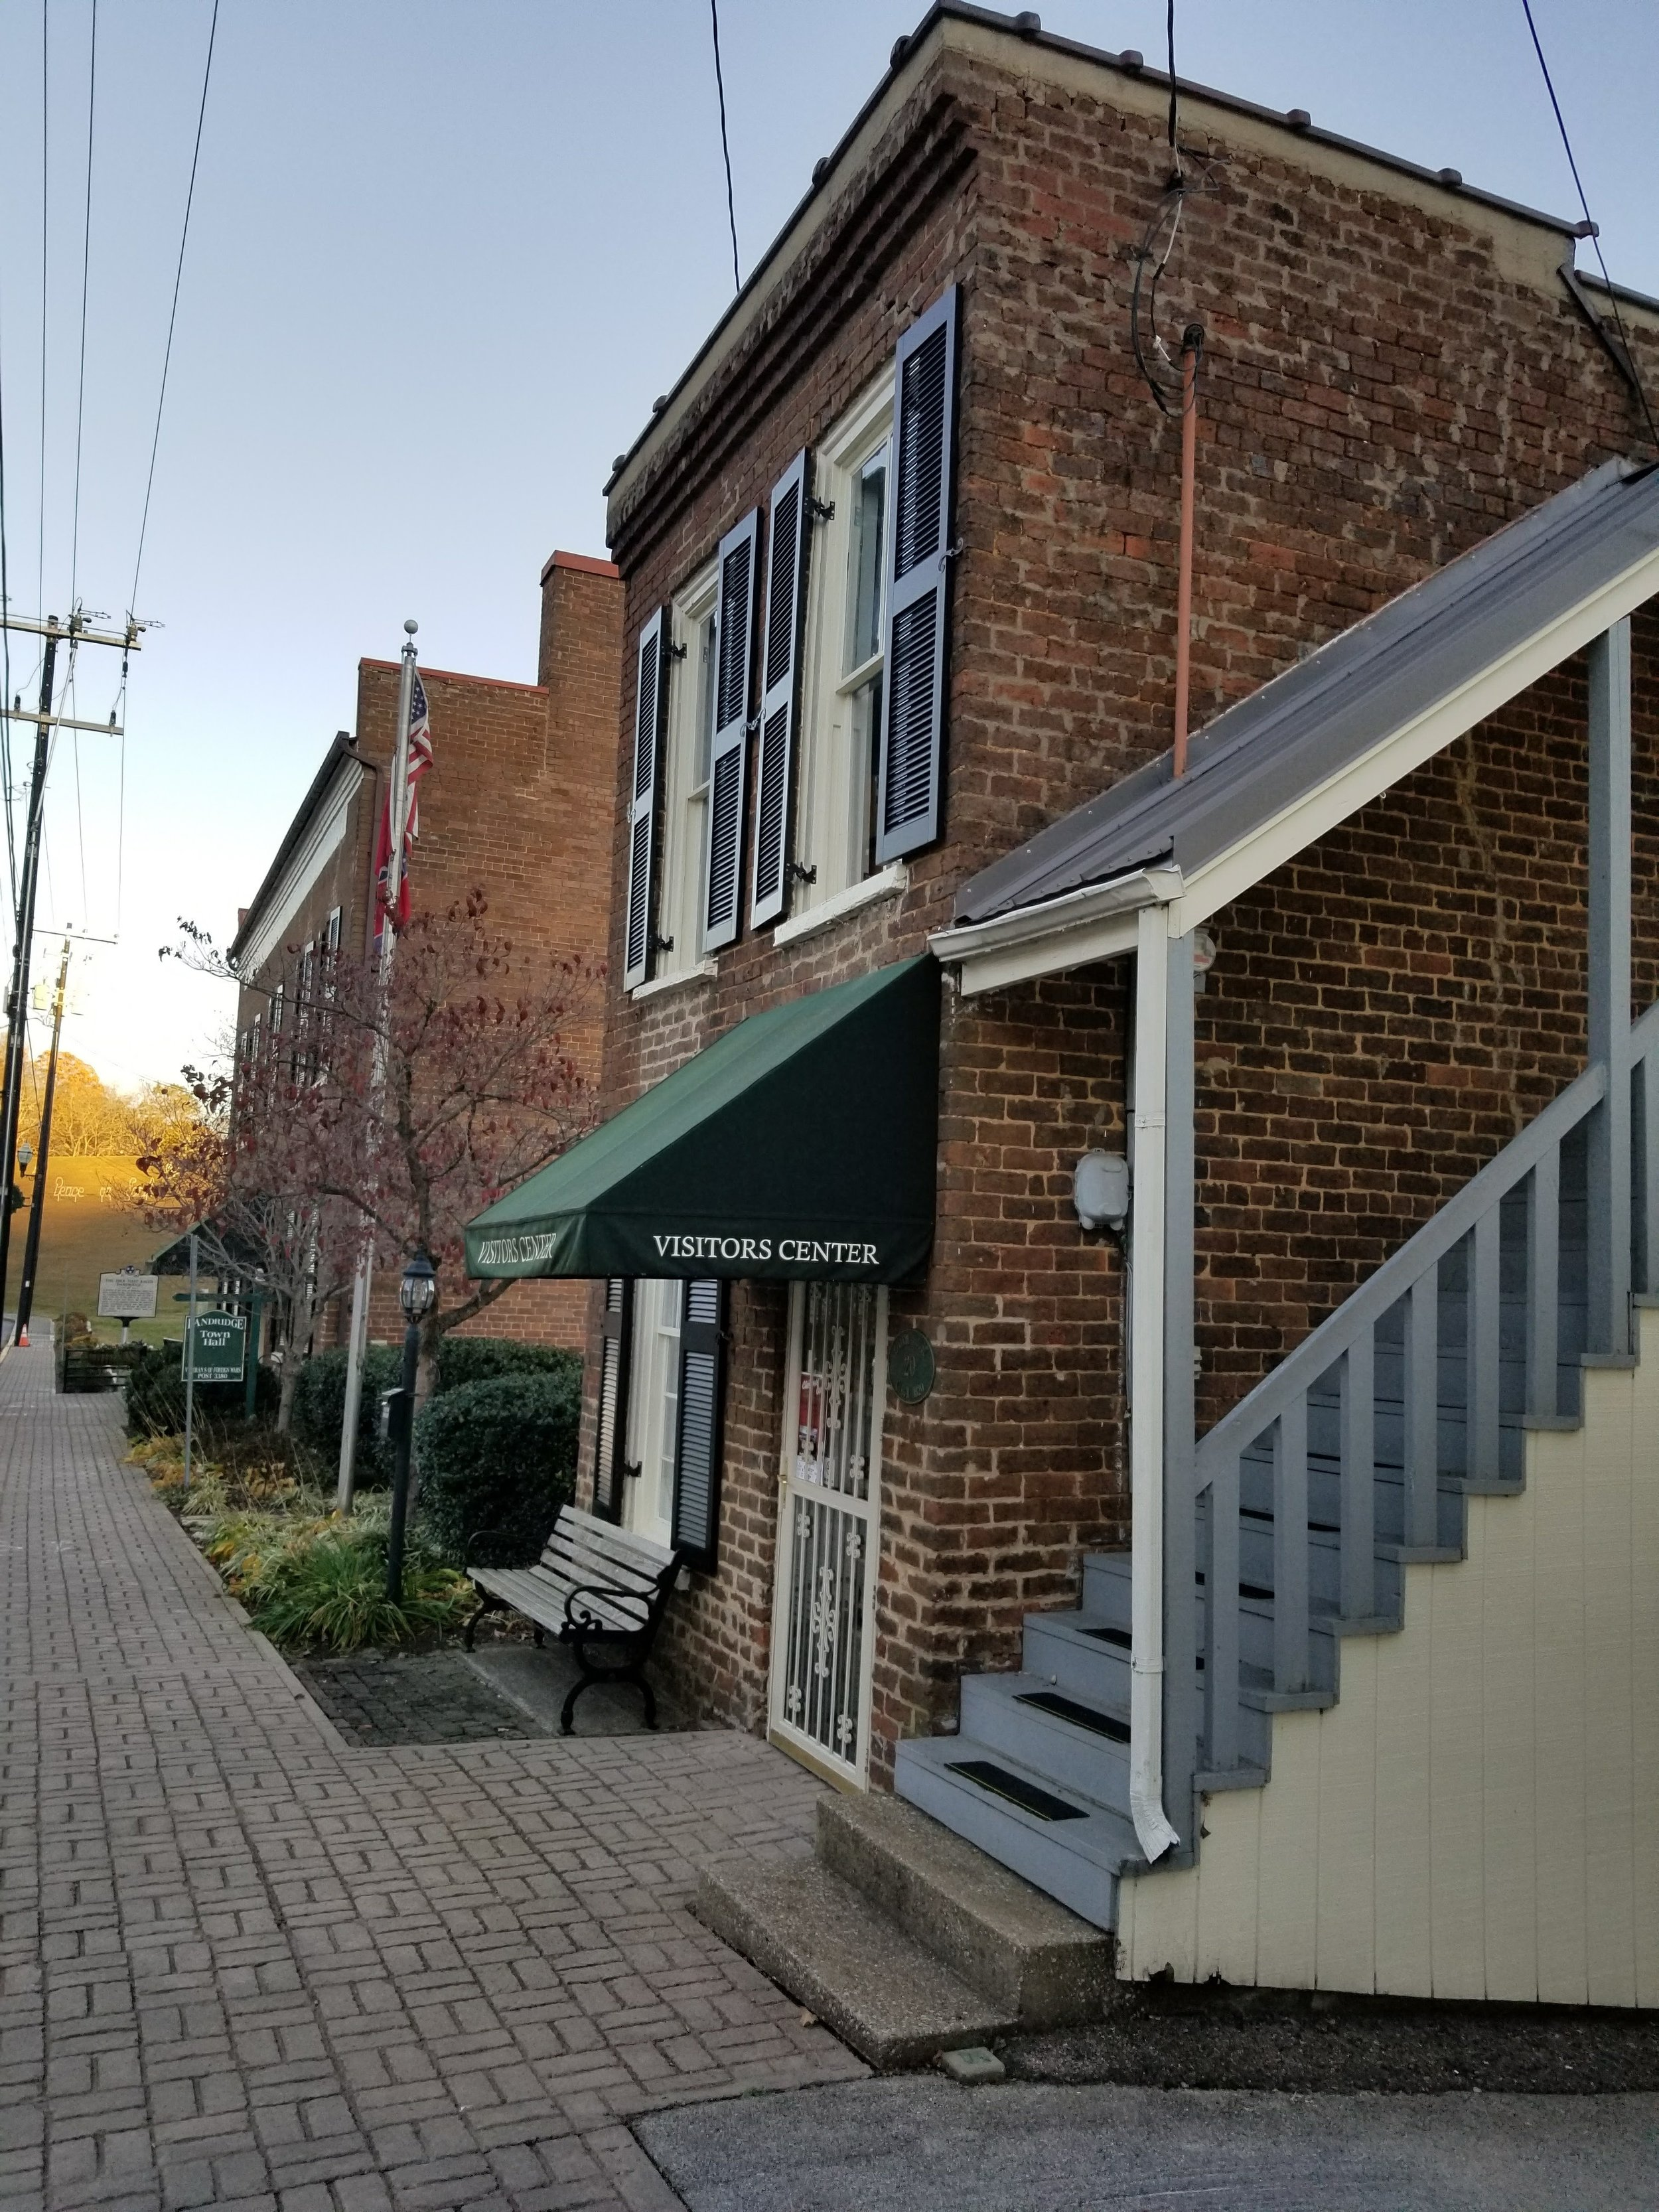 Taking a stroll along the streets of Dandridge will definitely give you a feeling that you've stepped back in time.